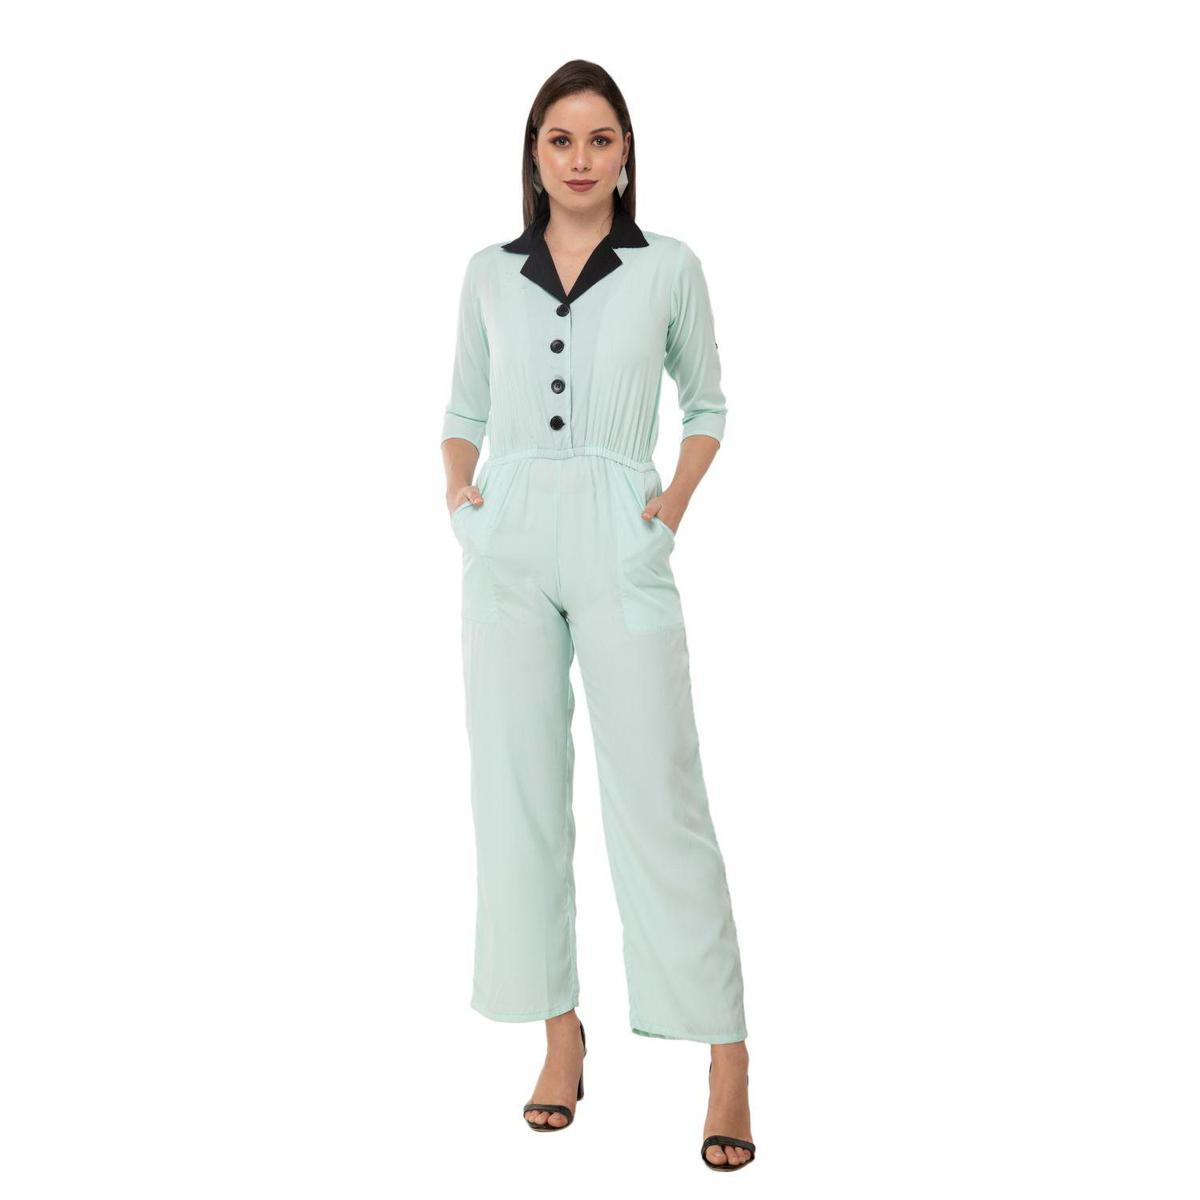 Taaraa - Light turquoise Blue Colored Casual Solid Crepe Jumpsuit